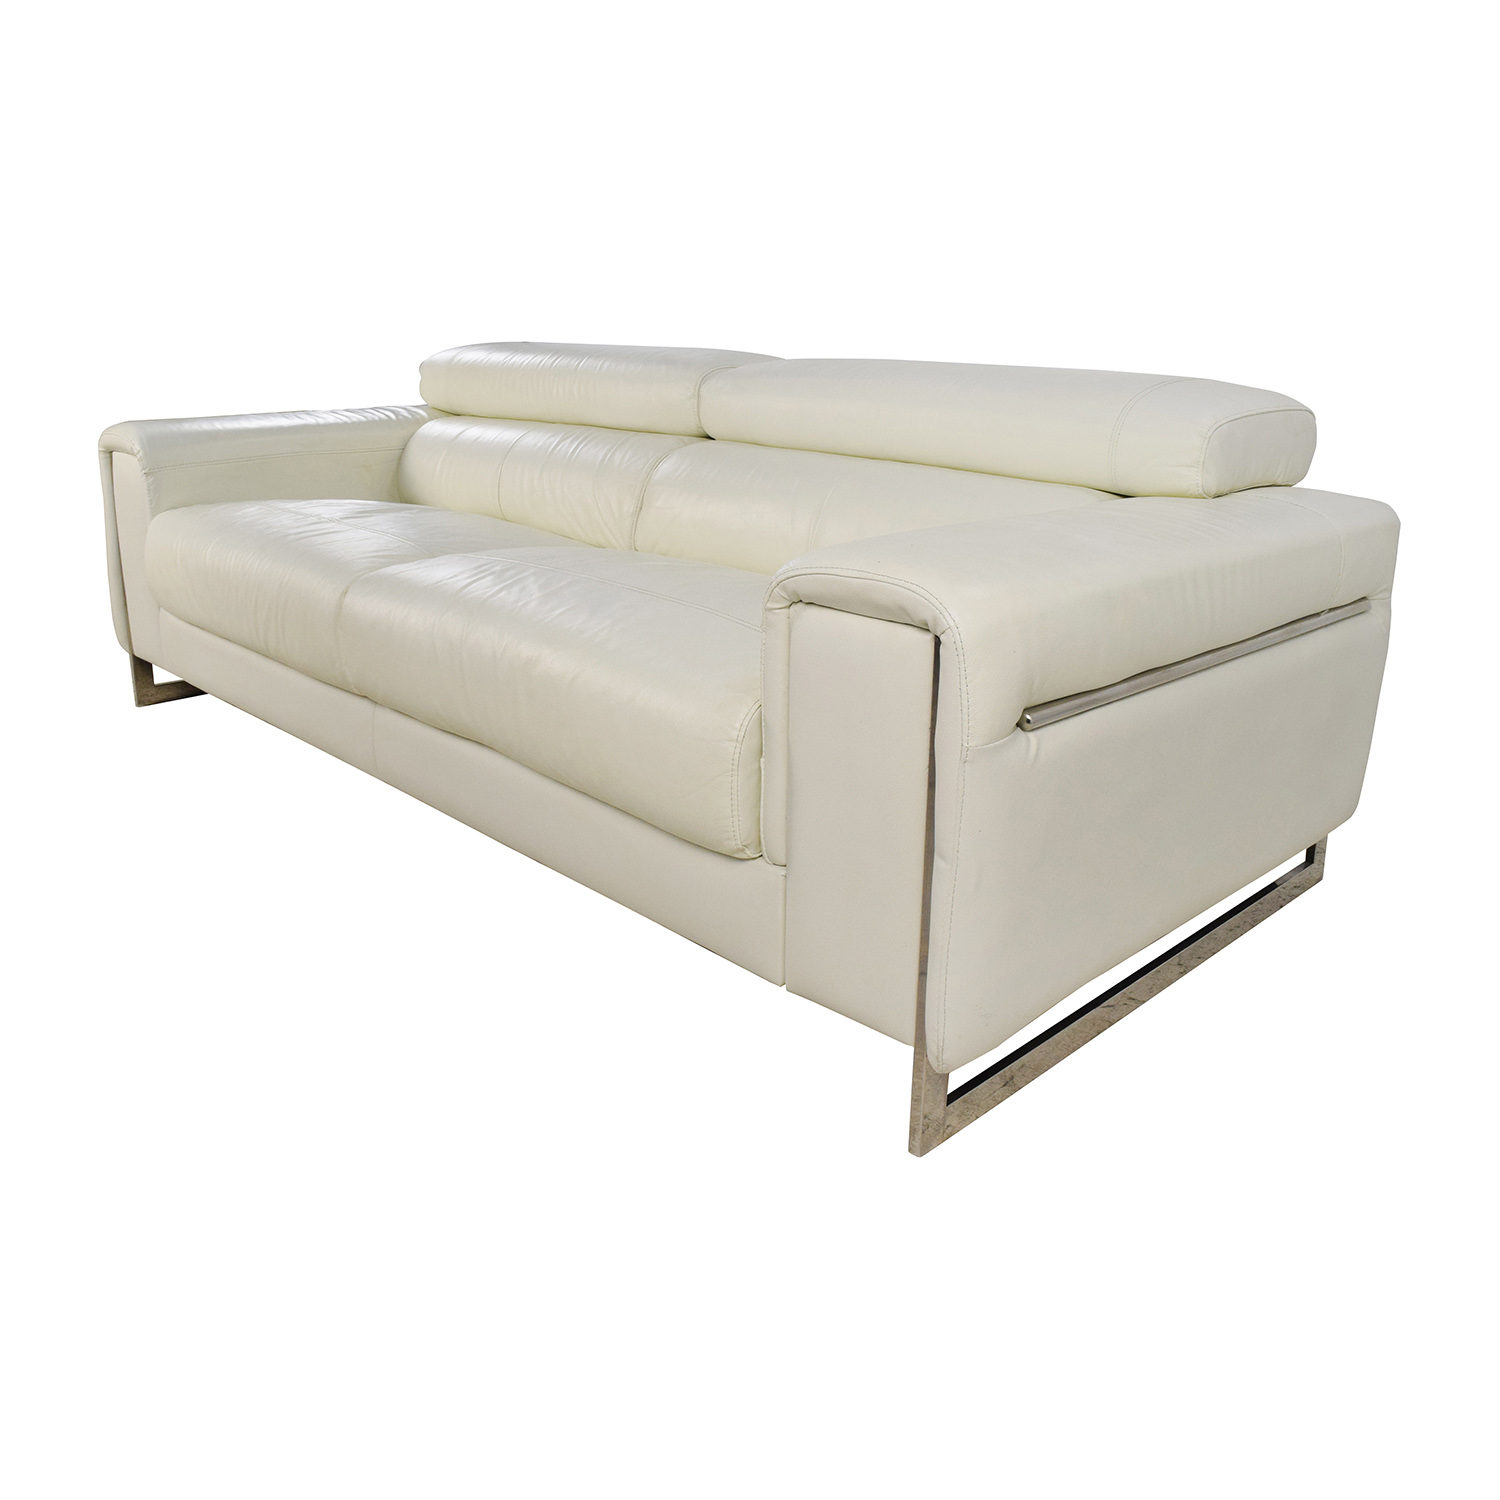 j m paquet sofa denim sofas 64 off jnm and soho white leather